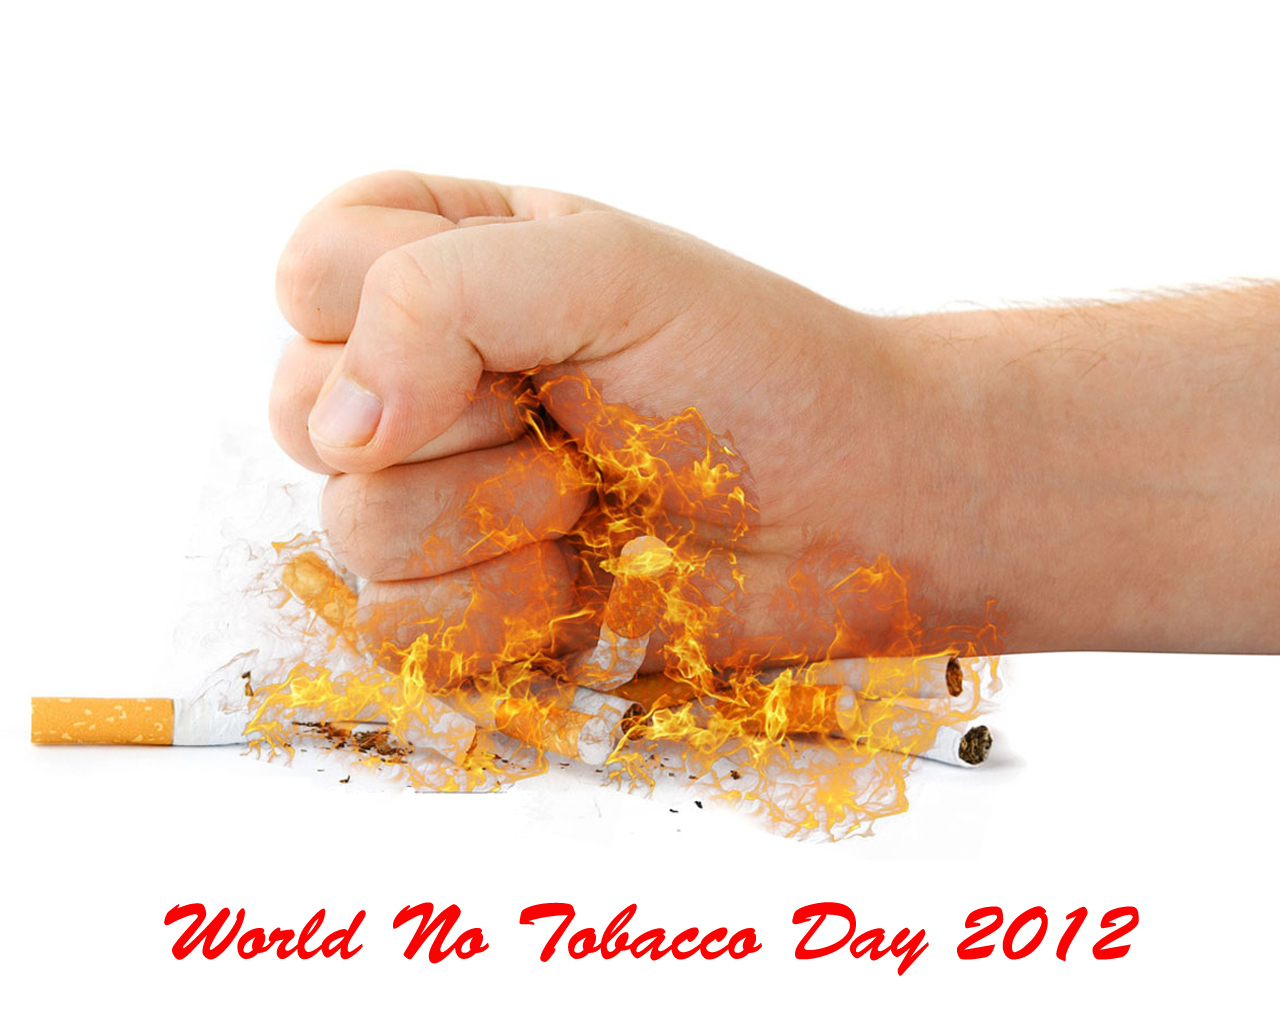 World No Tobacco Day 2012